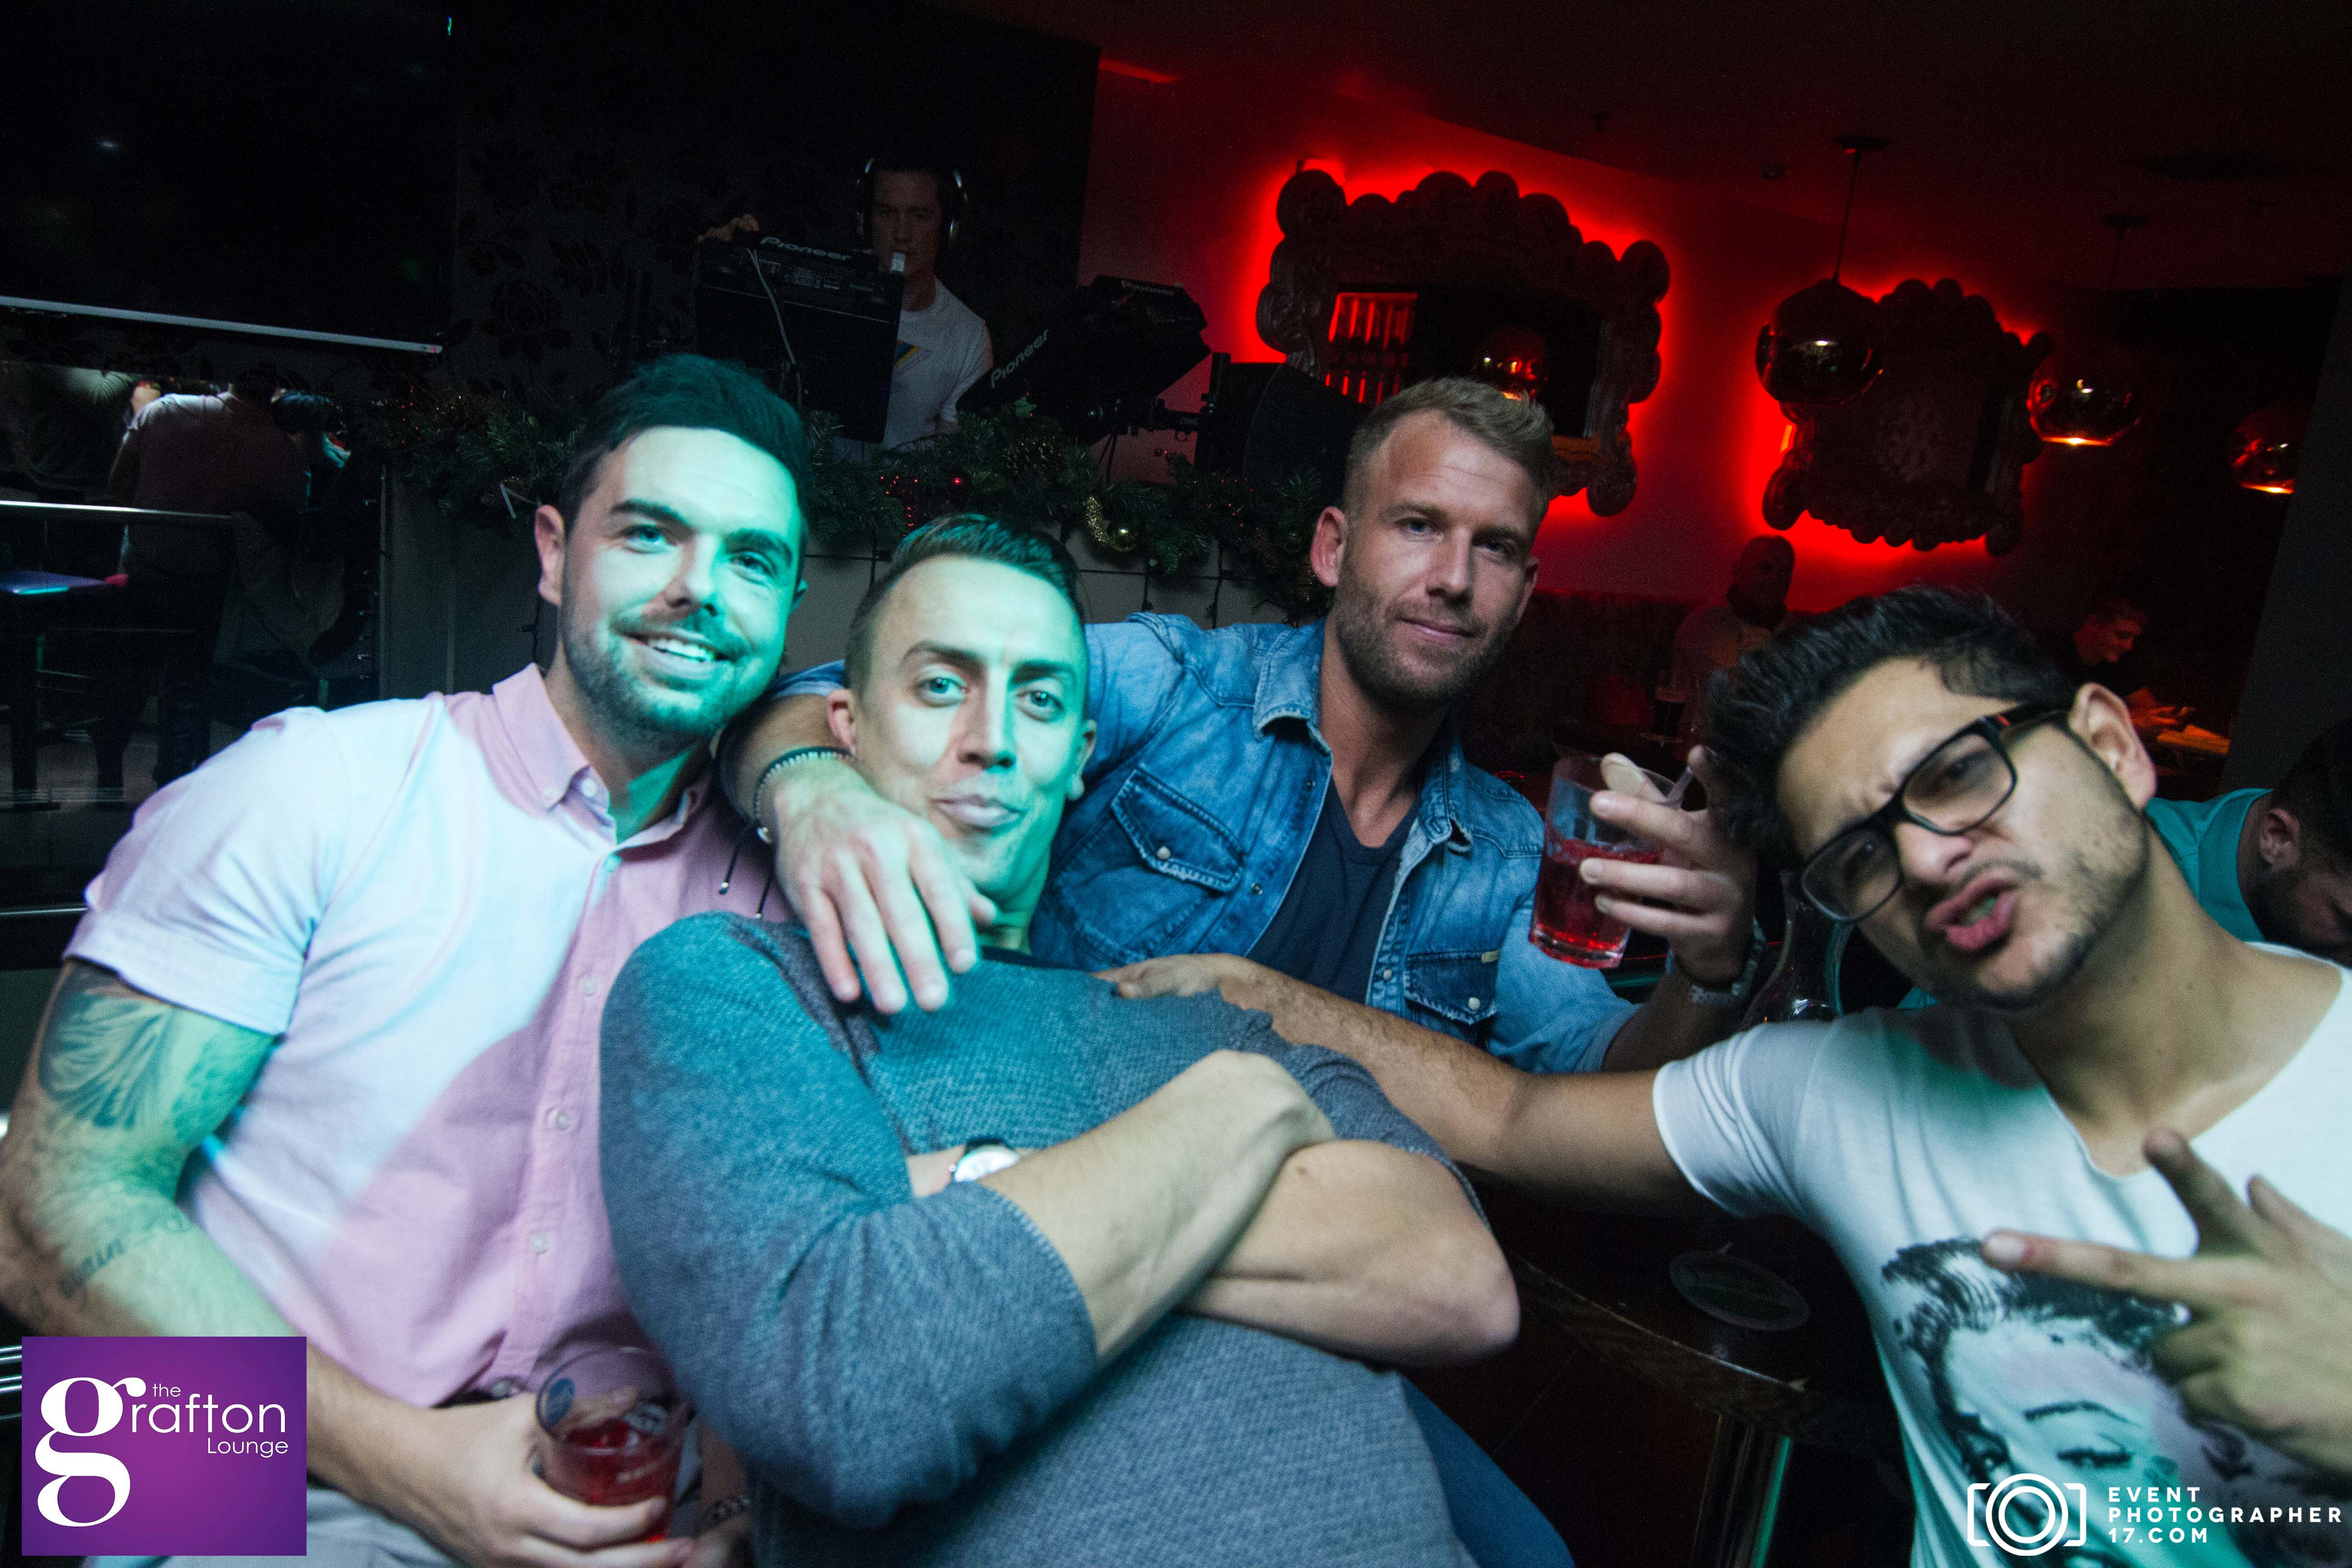 Hotspots.ie Photo Gallery from the weekend